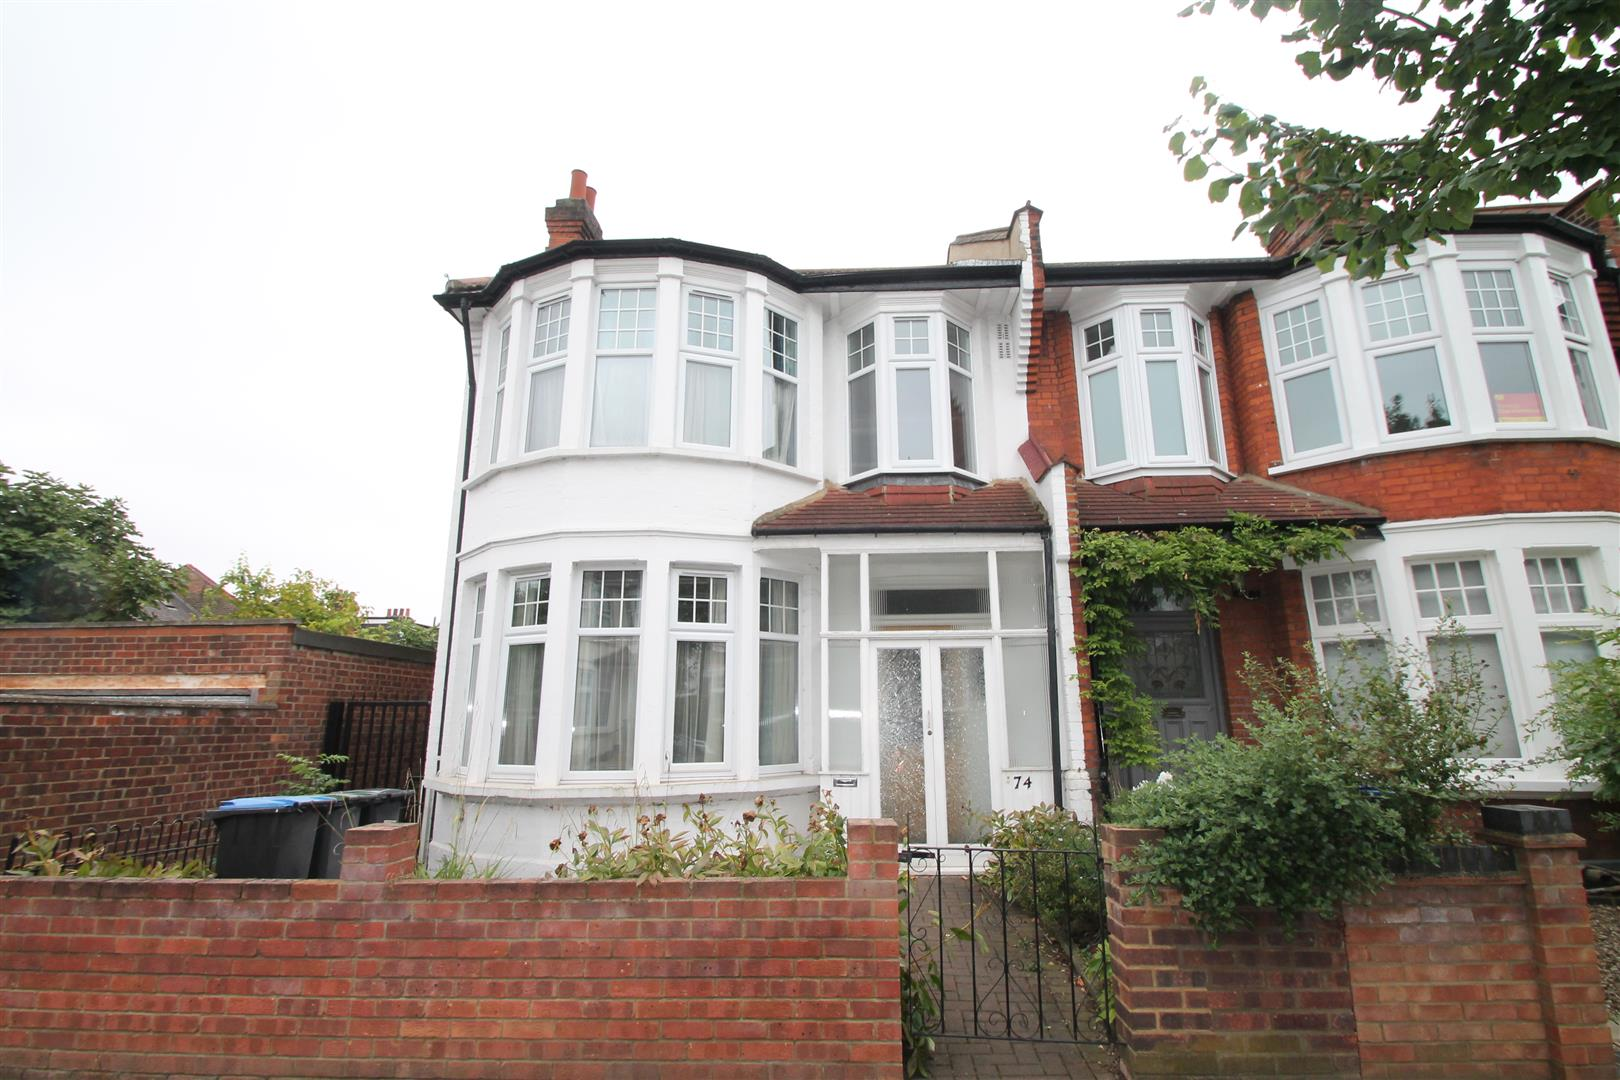 4 Bedrooms House for sale in Cranley Gardens, Palmers Green, London N13